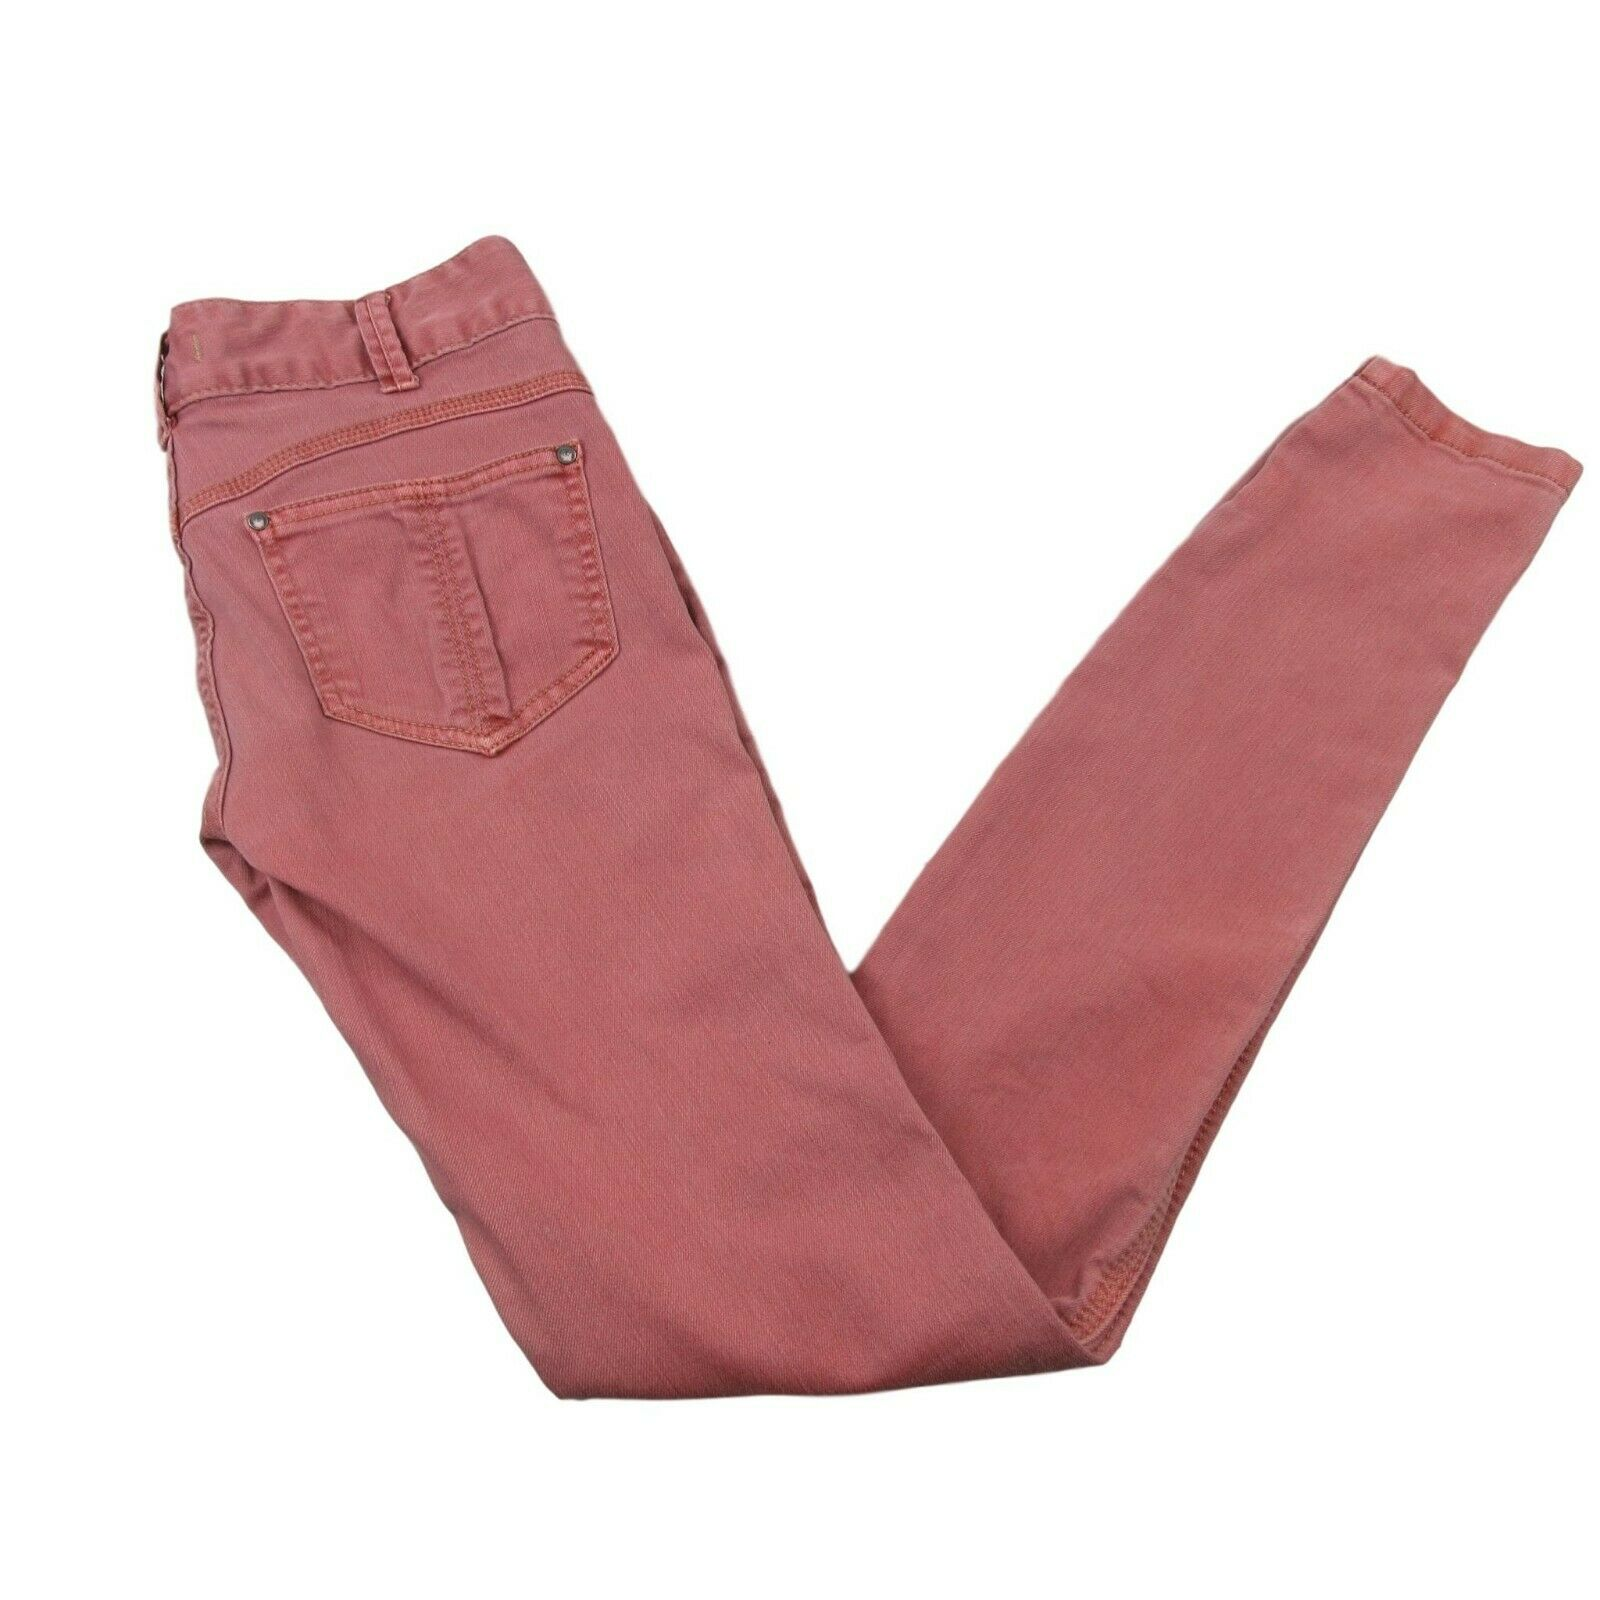 e1ab8f95f649d Free People Denim Red Rose Pink Skinny Jeans Size 24 Straight Leg ...